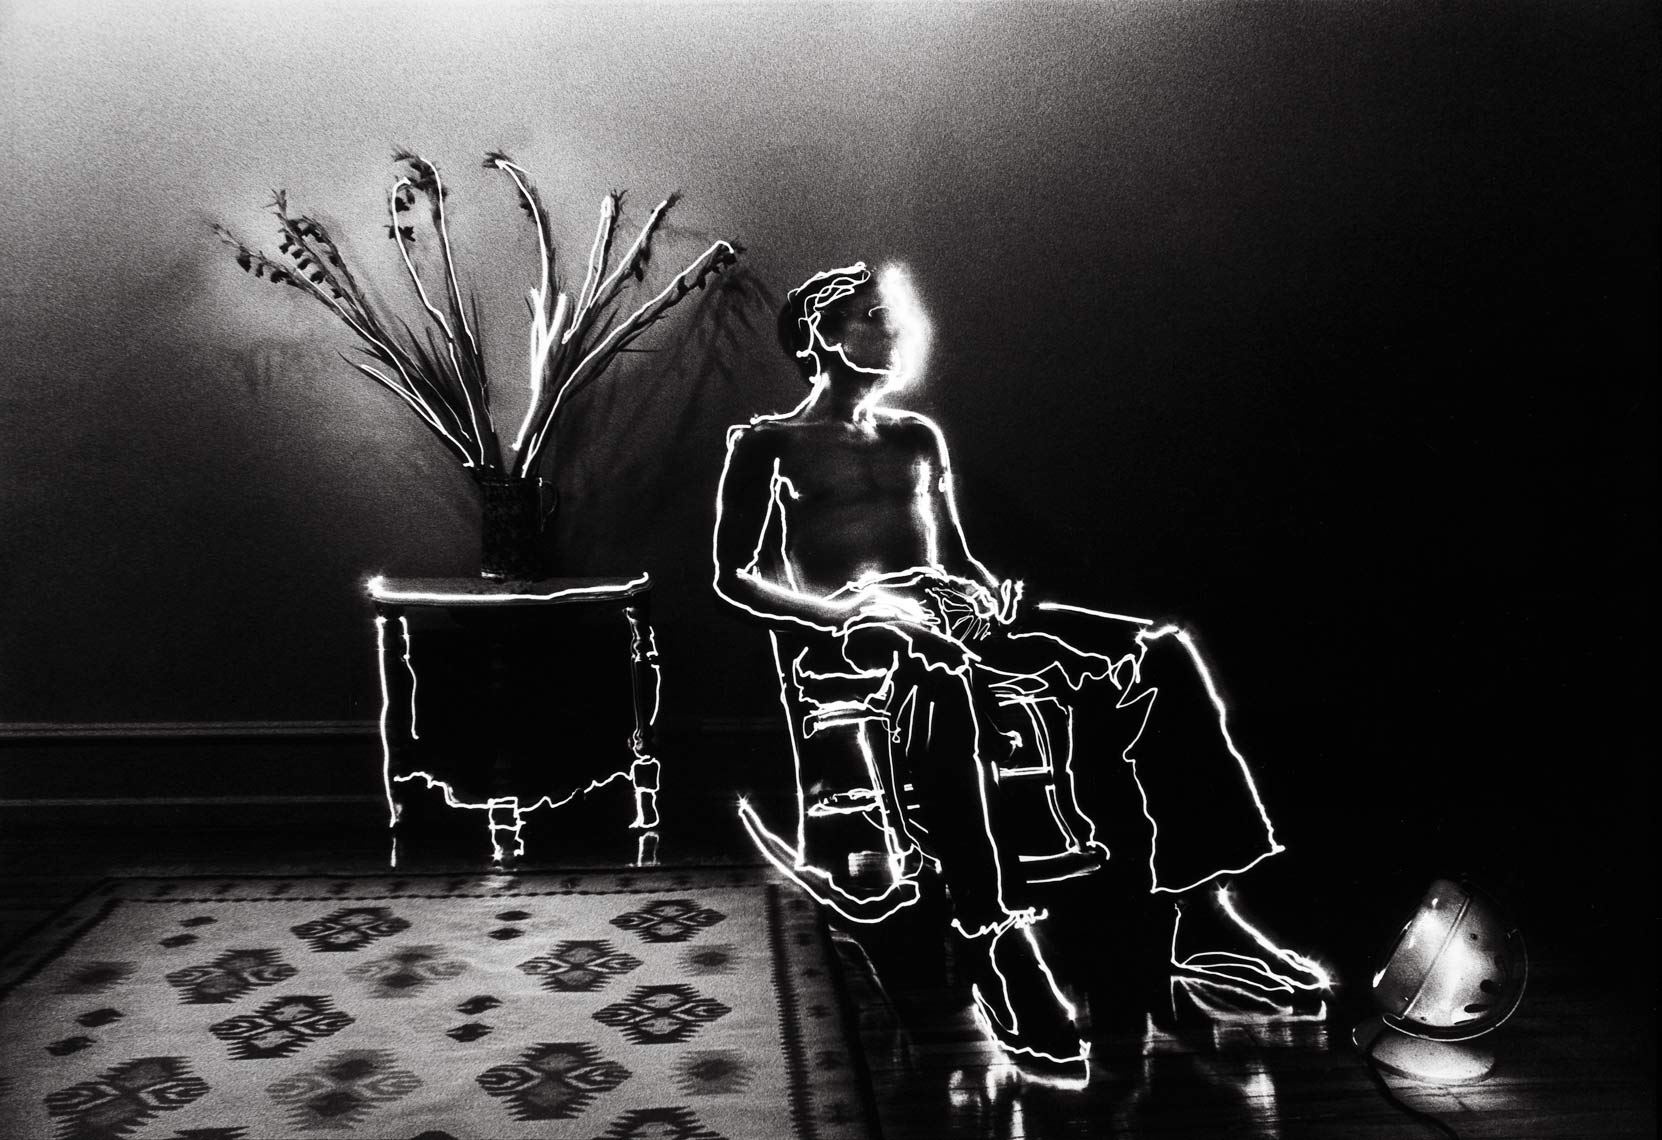 David Lebe; Barry In Rocker, 1979, light drawing, black and white photograph